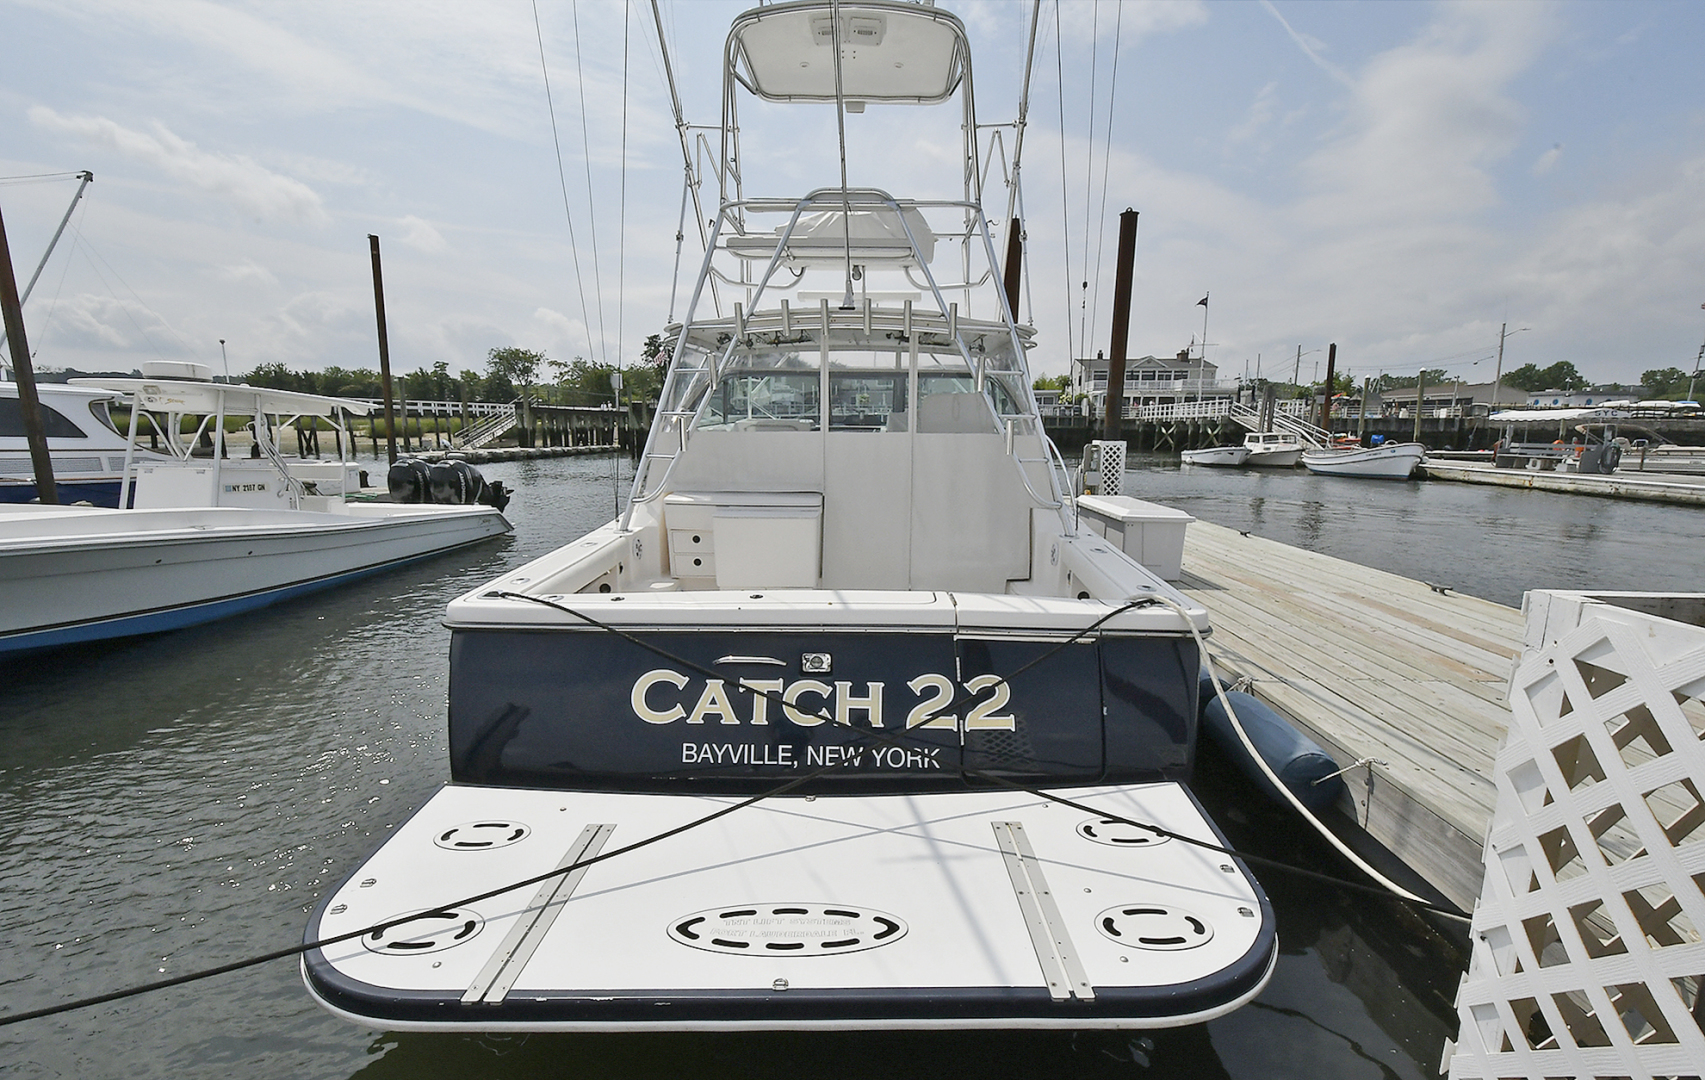 Tiara-3800 Open 2003-Catch 22 Oyster Bay-New York-United States-Transom-1224906 | Thumbnail